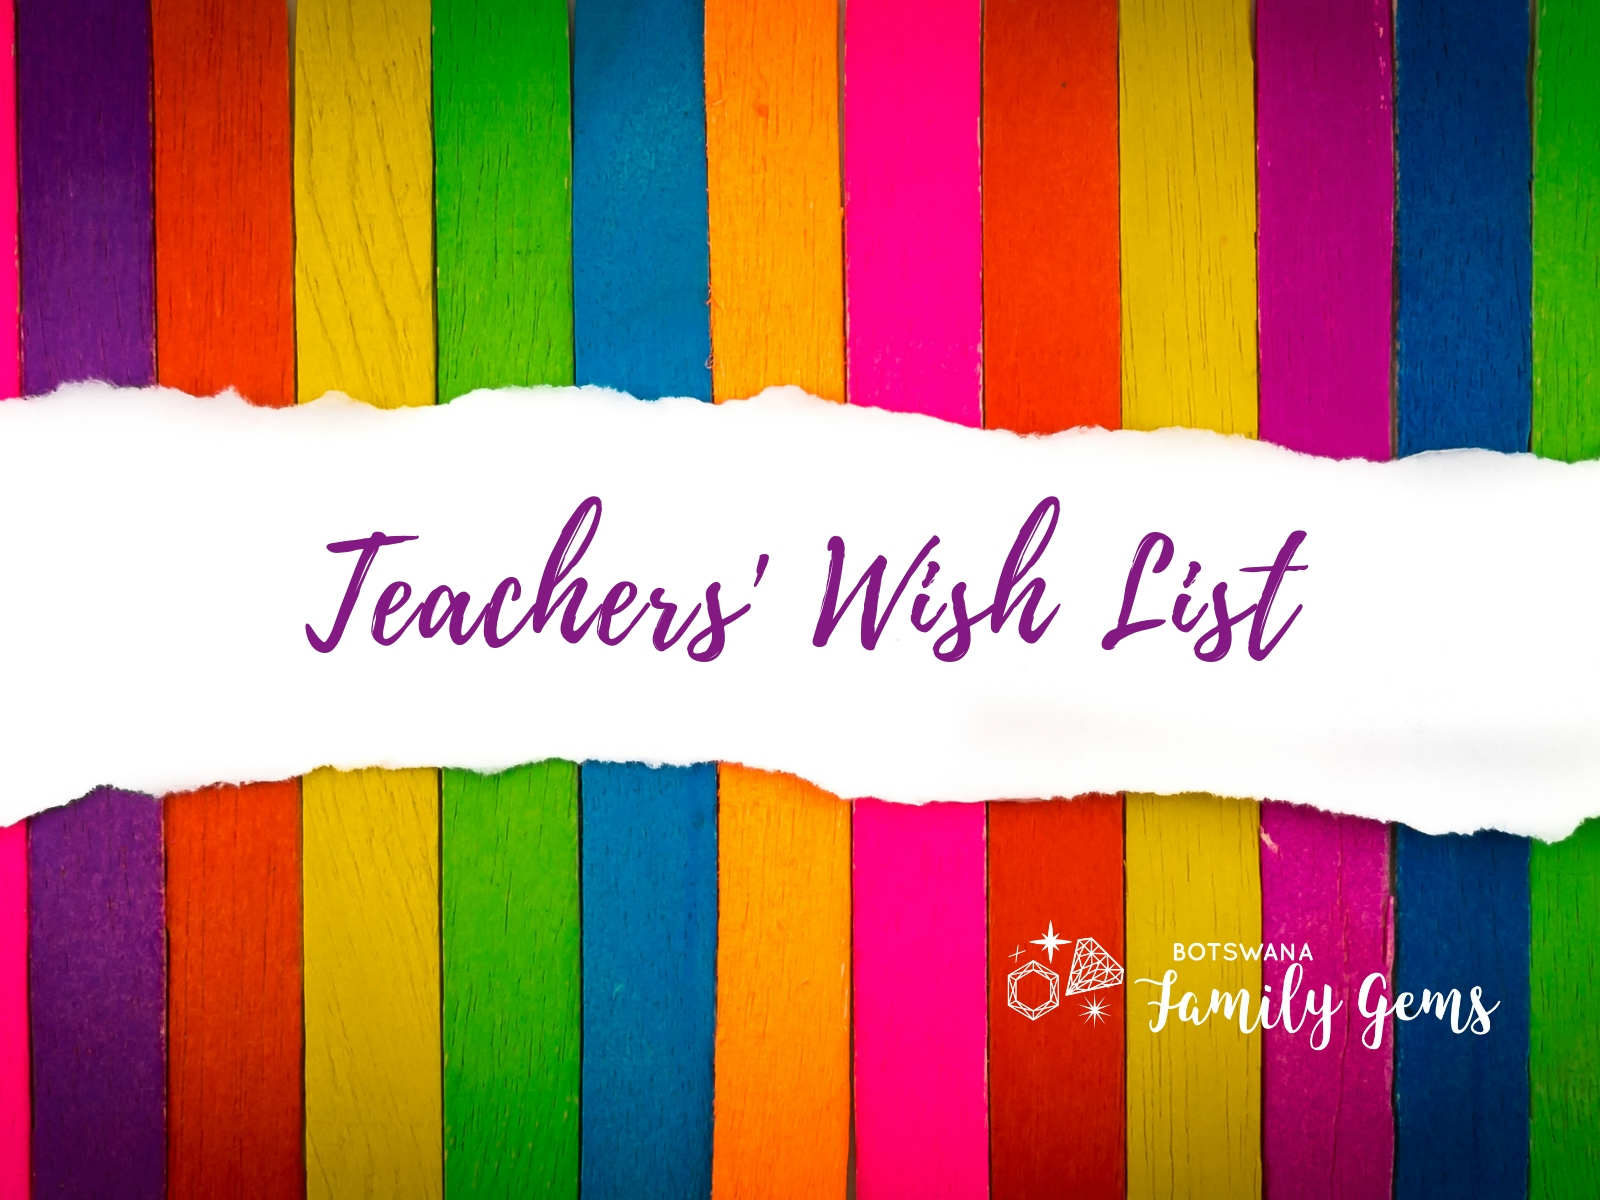 Teachers wish list for students